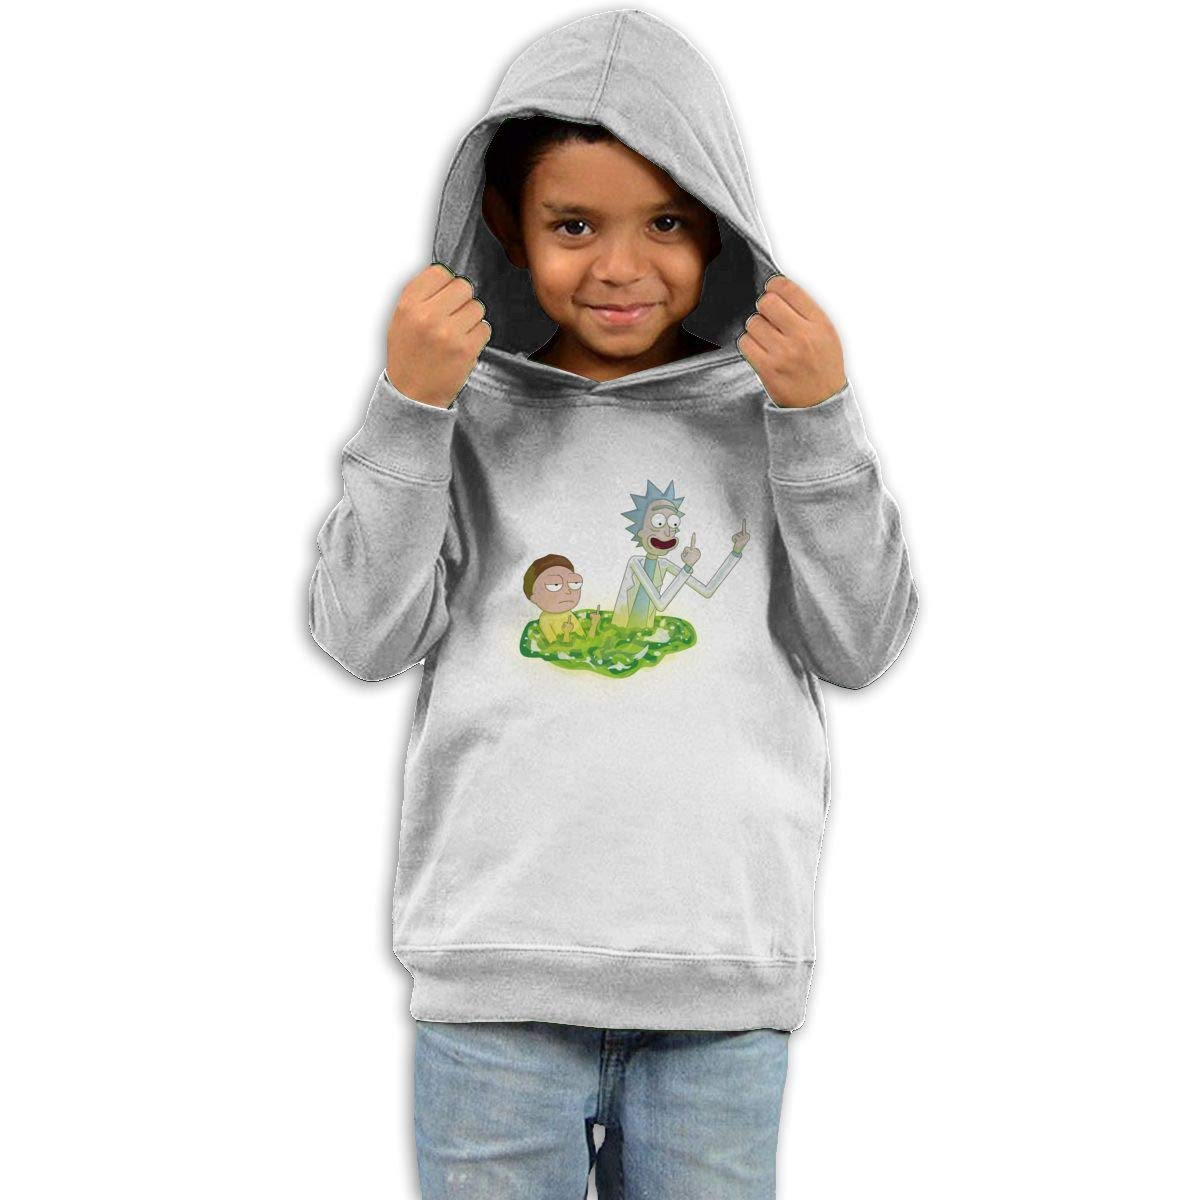 Stacy J. Payne Toddler Rick and Morty Fashion Fleece41 White